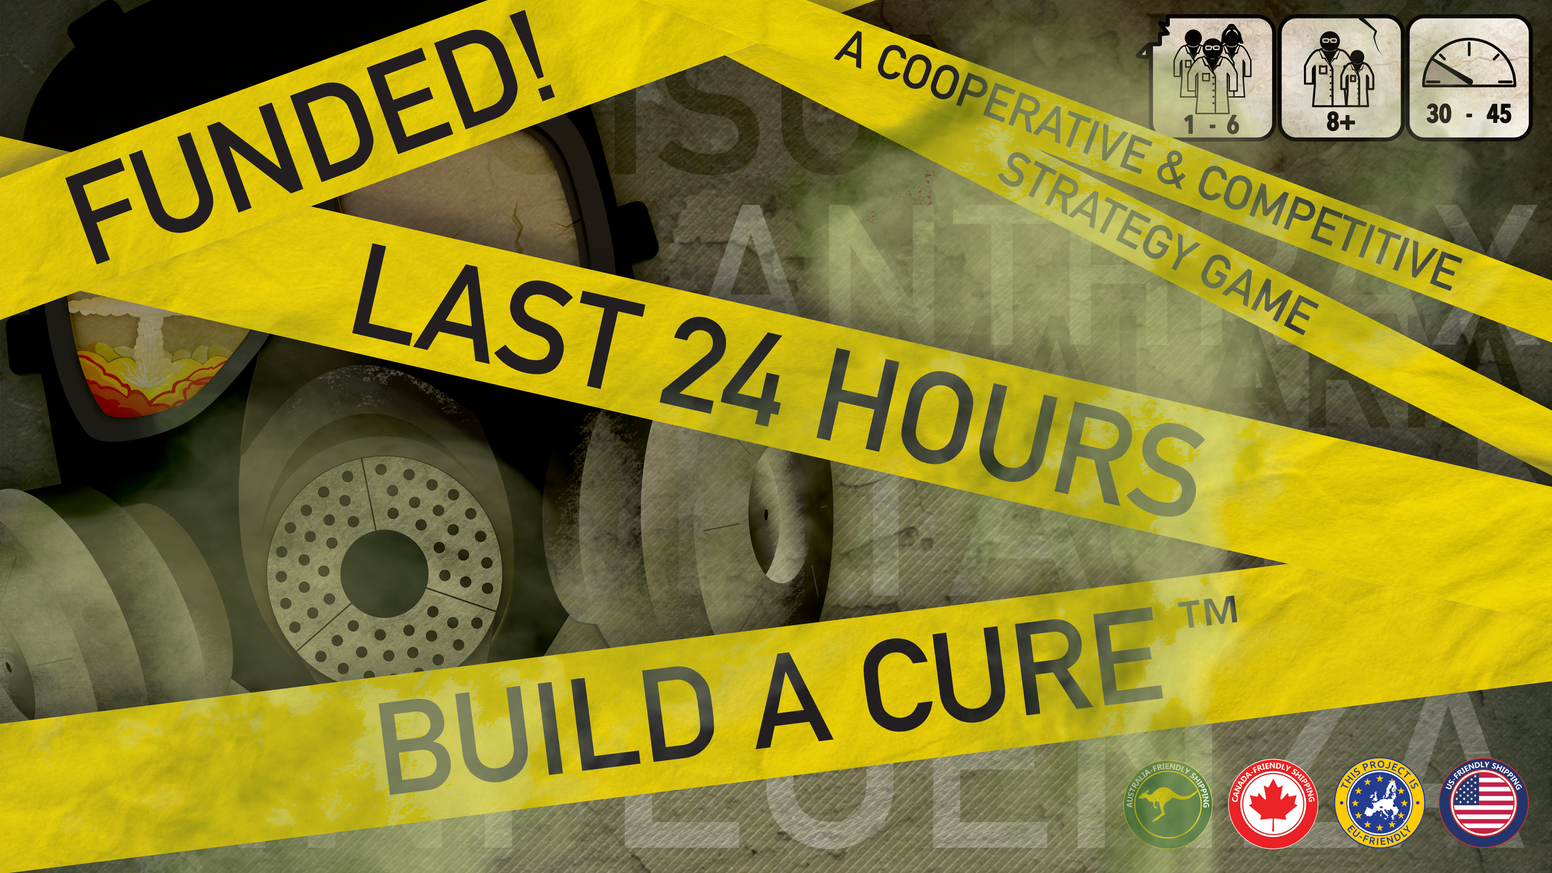 Build A Cure with your team before the resources run out, or suffer the fate of the diseases that plague you.